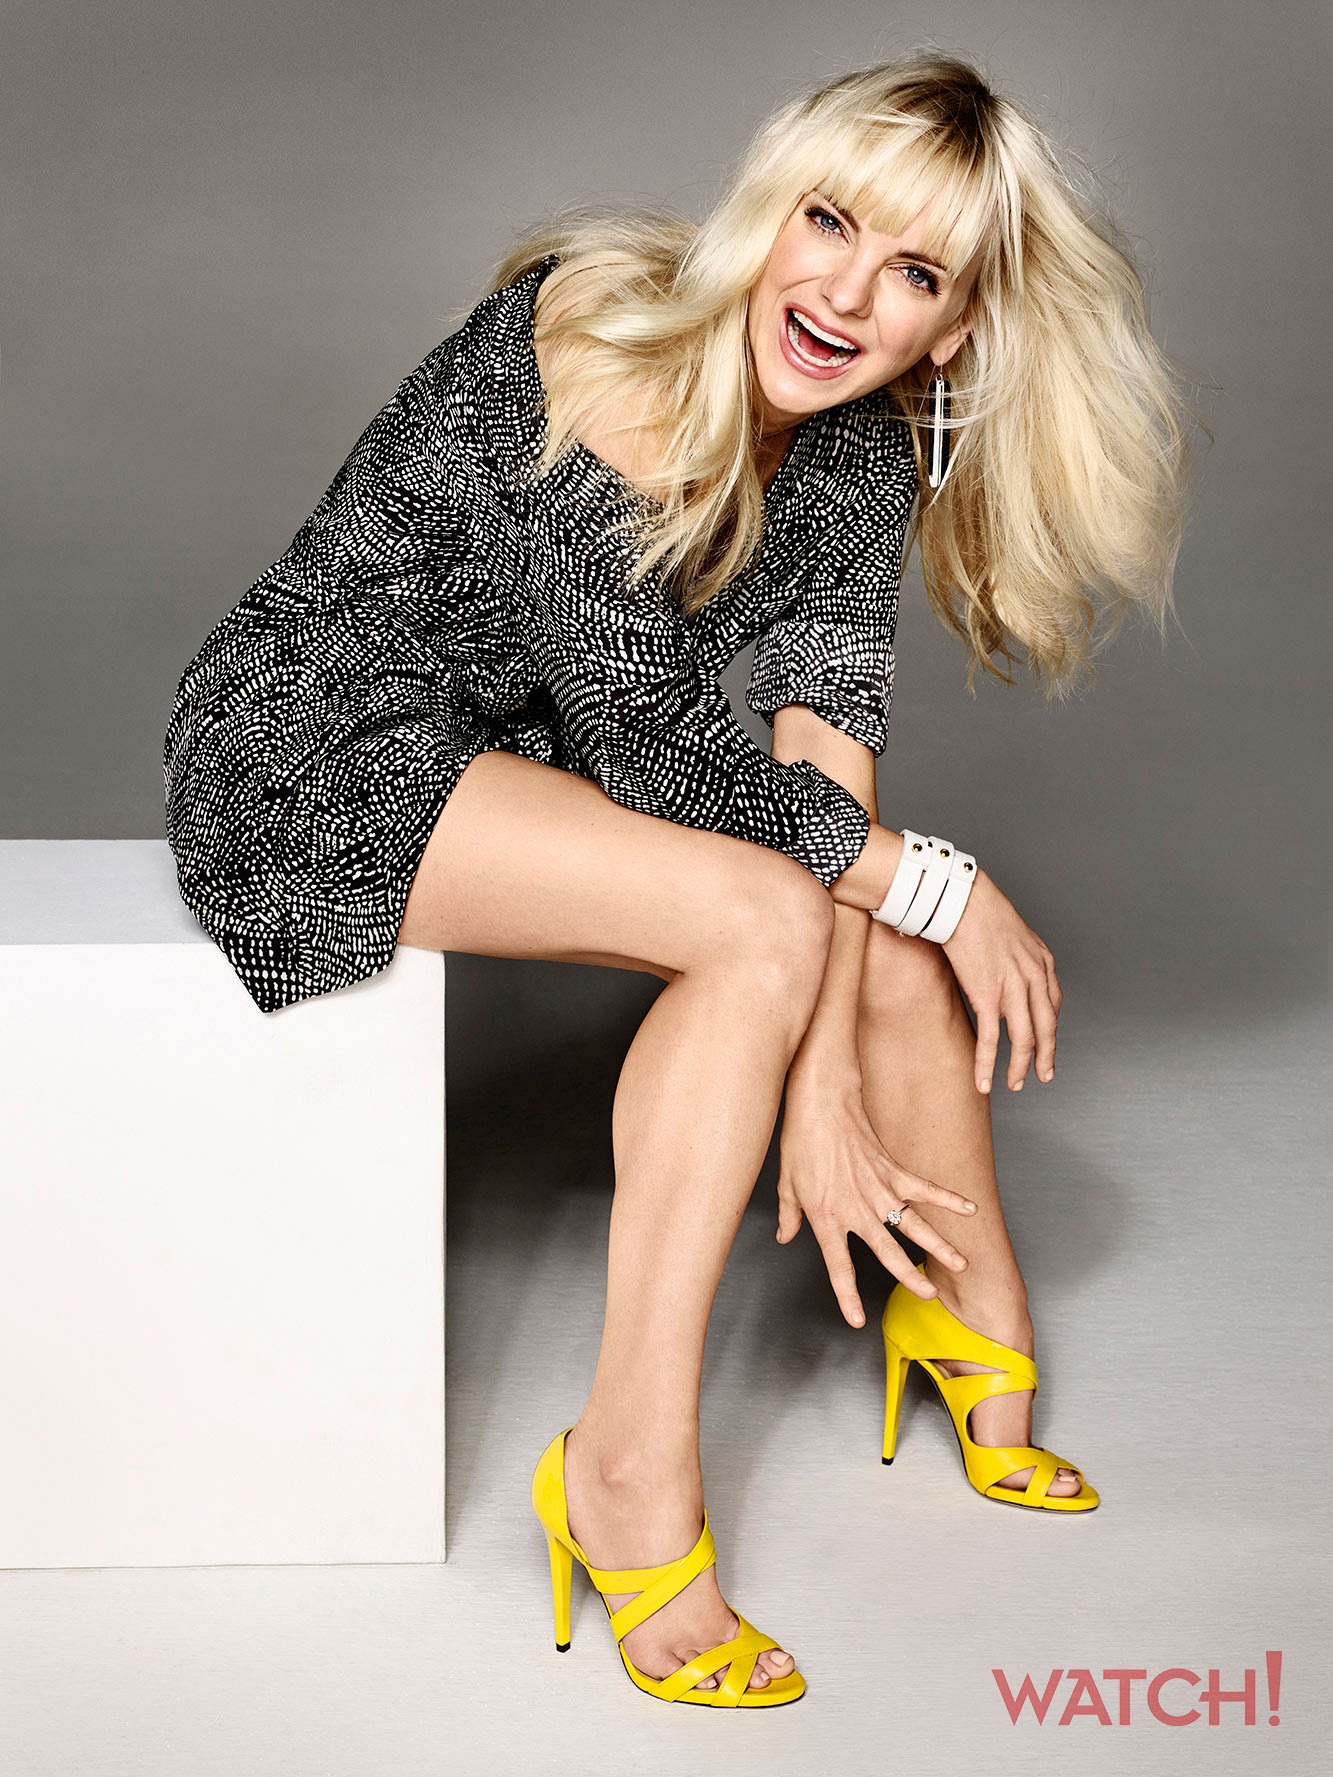 Gorgeous and good-humored, Anna Faris always gets us grinning